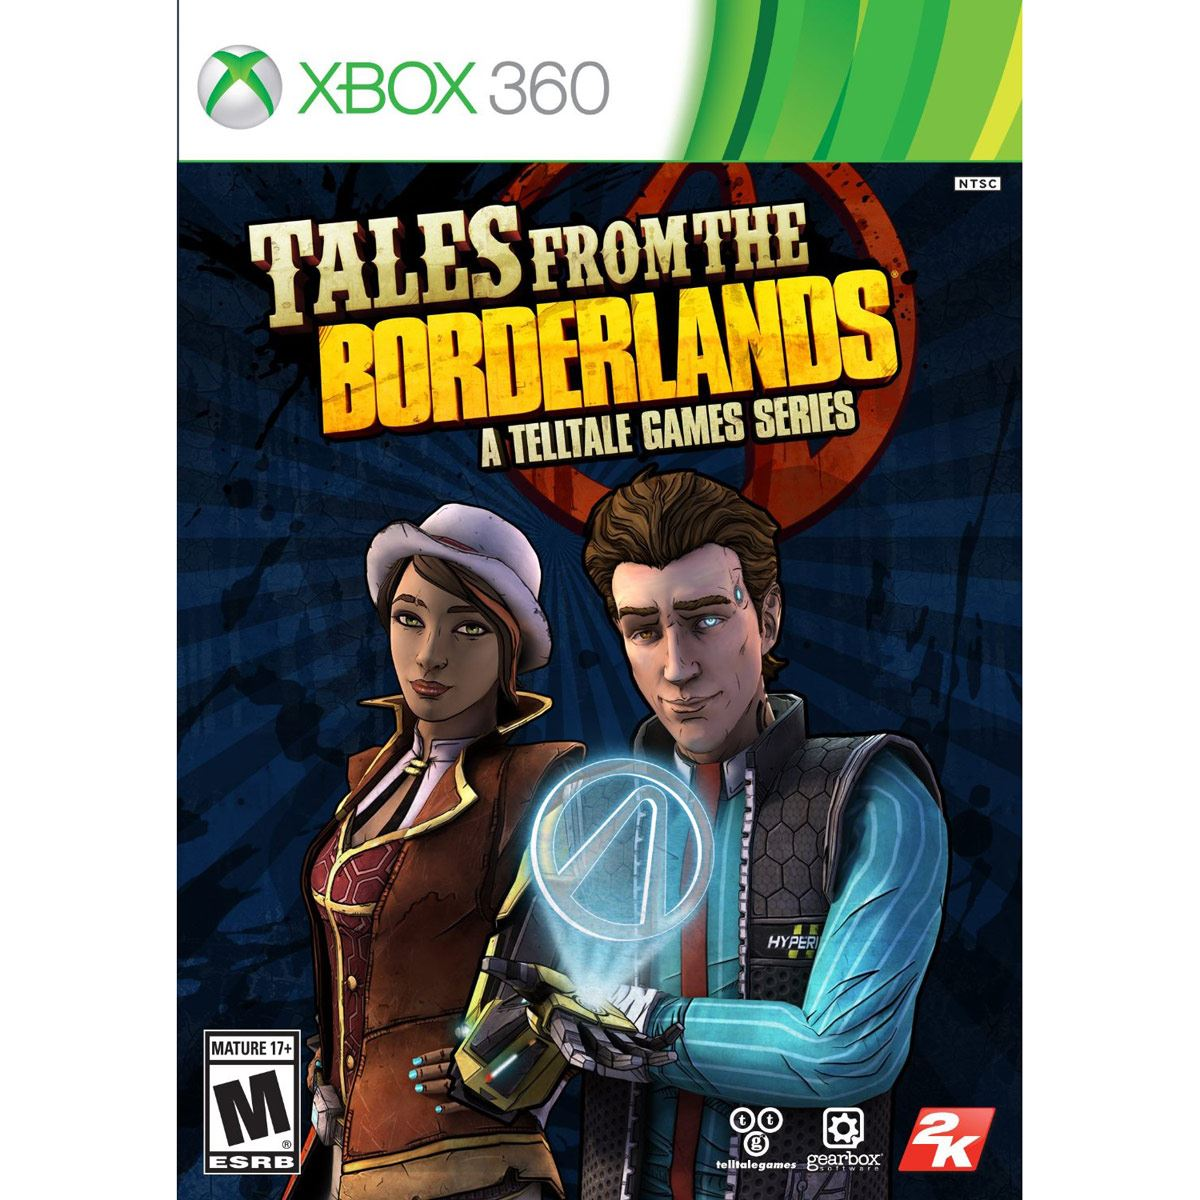 Xbox 360 Tales From The Borderland.